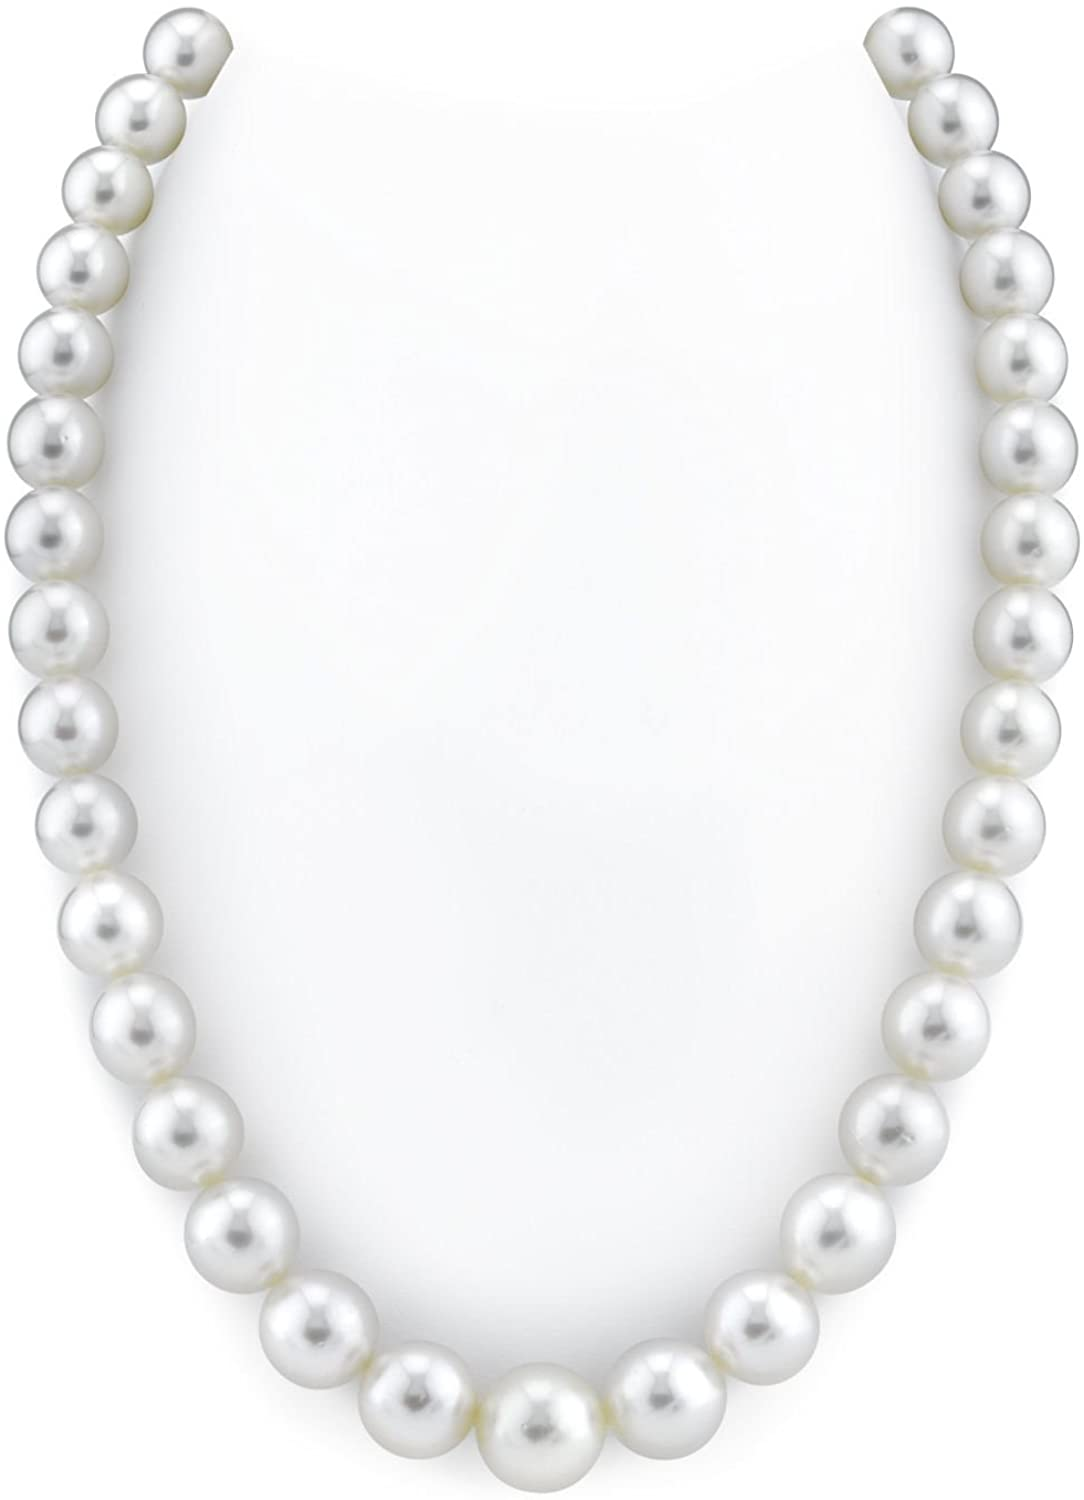 THE PEARL SOURCE 14K Gold 10-12mm AAAA Quality Round Genuine White South Sea Cultured Pearl Necklace in 20